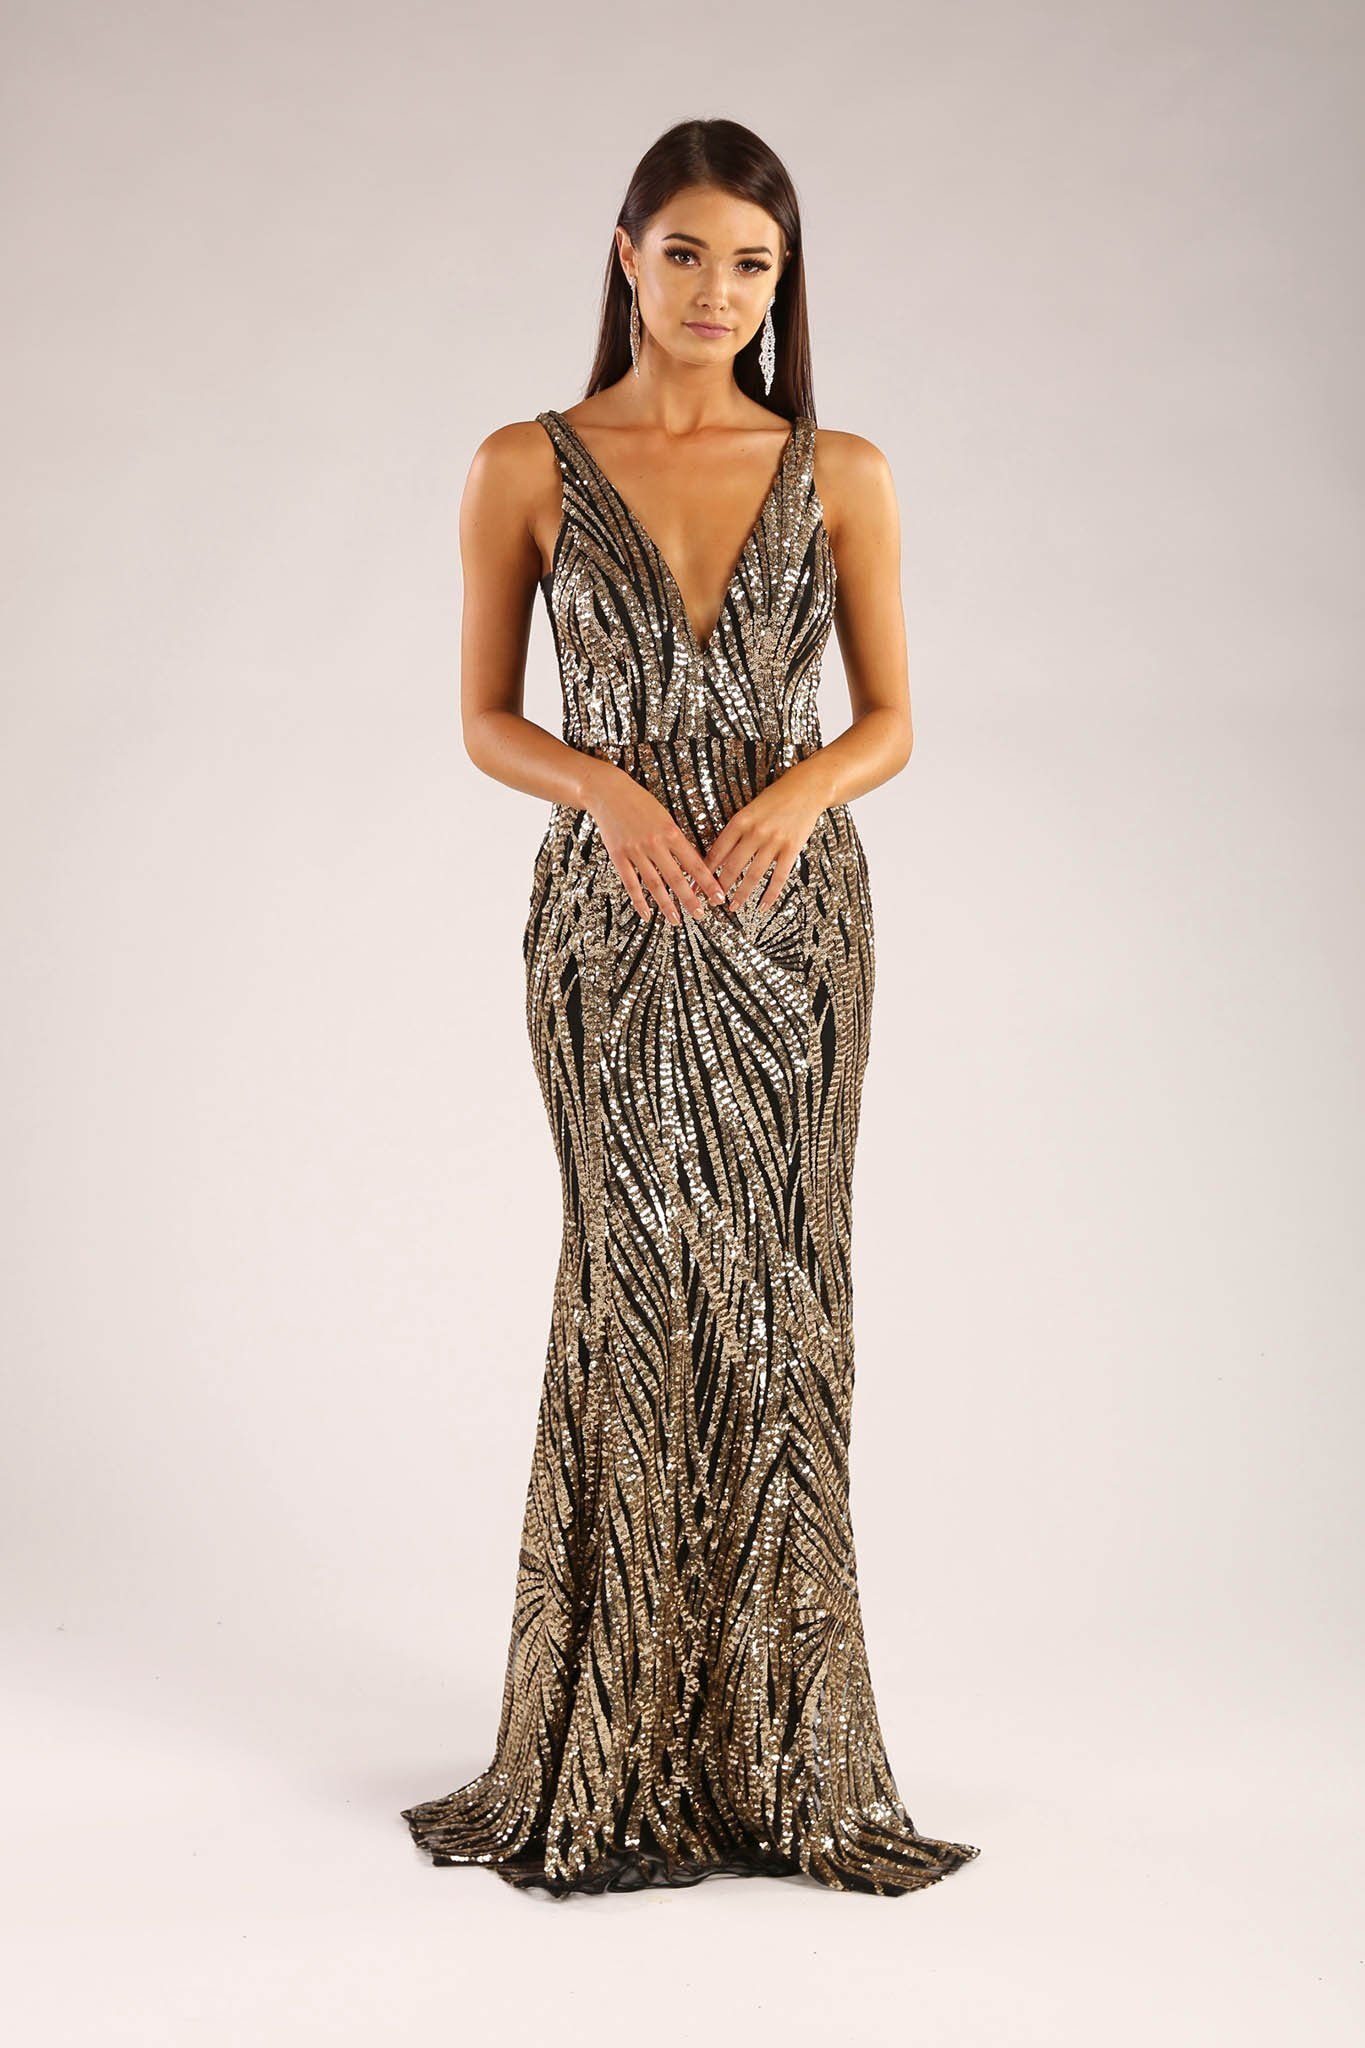 888b1e917f ... Gold and black sequin formal sleeveless gown with v plunge neckline and  open back design ...